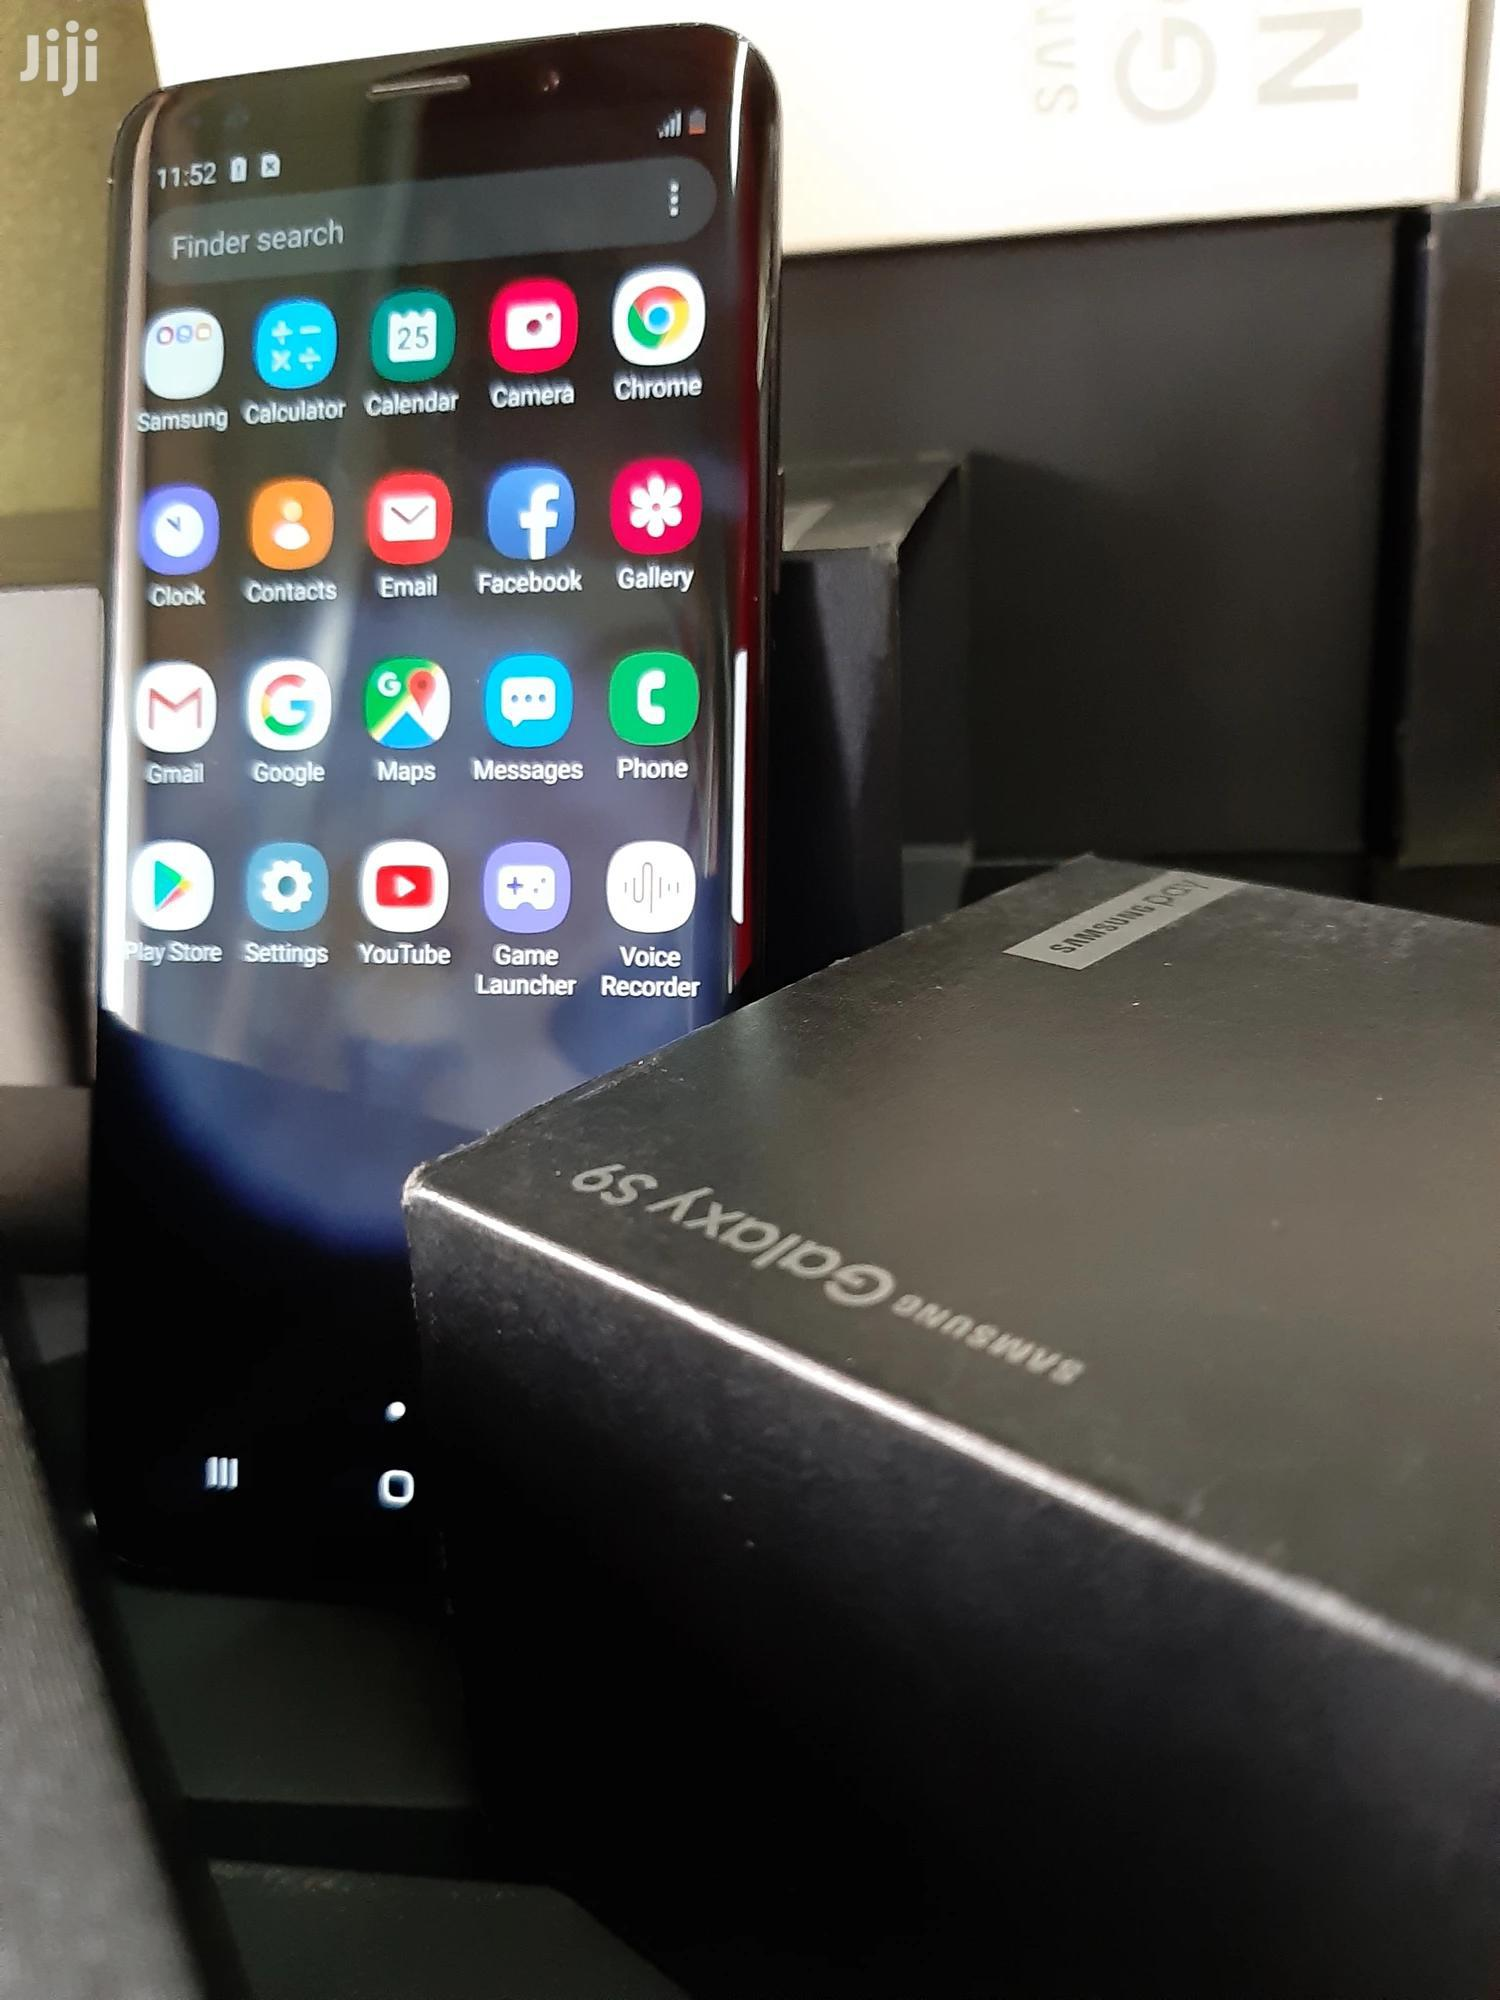 Samsung Galaxy S9 64 GB | Mobile Phones for sale in Nairobi Central, Nairobi, Kenya